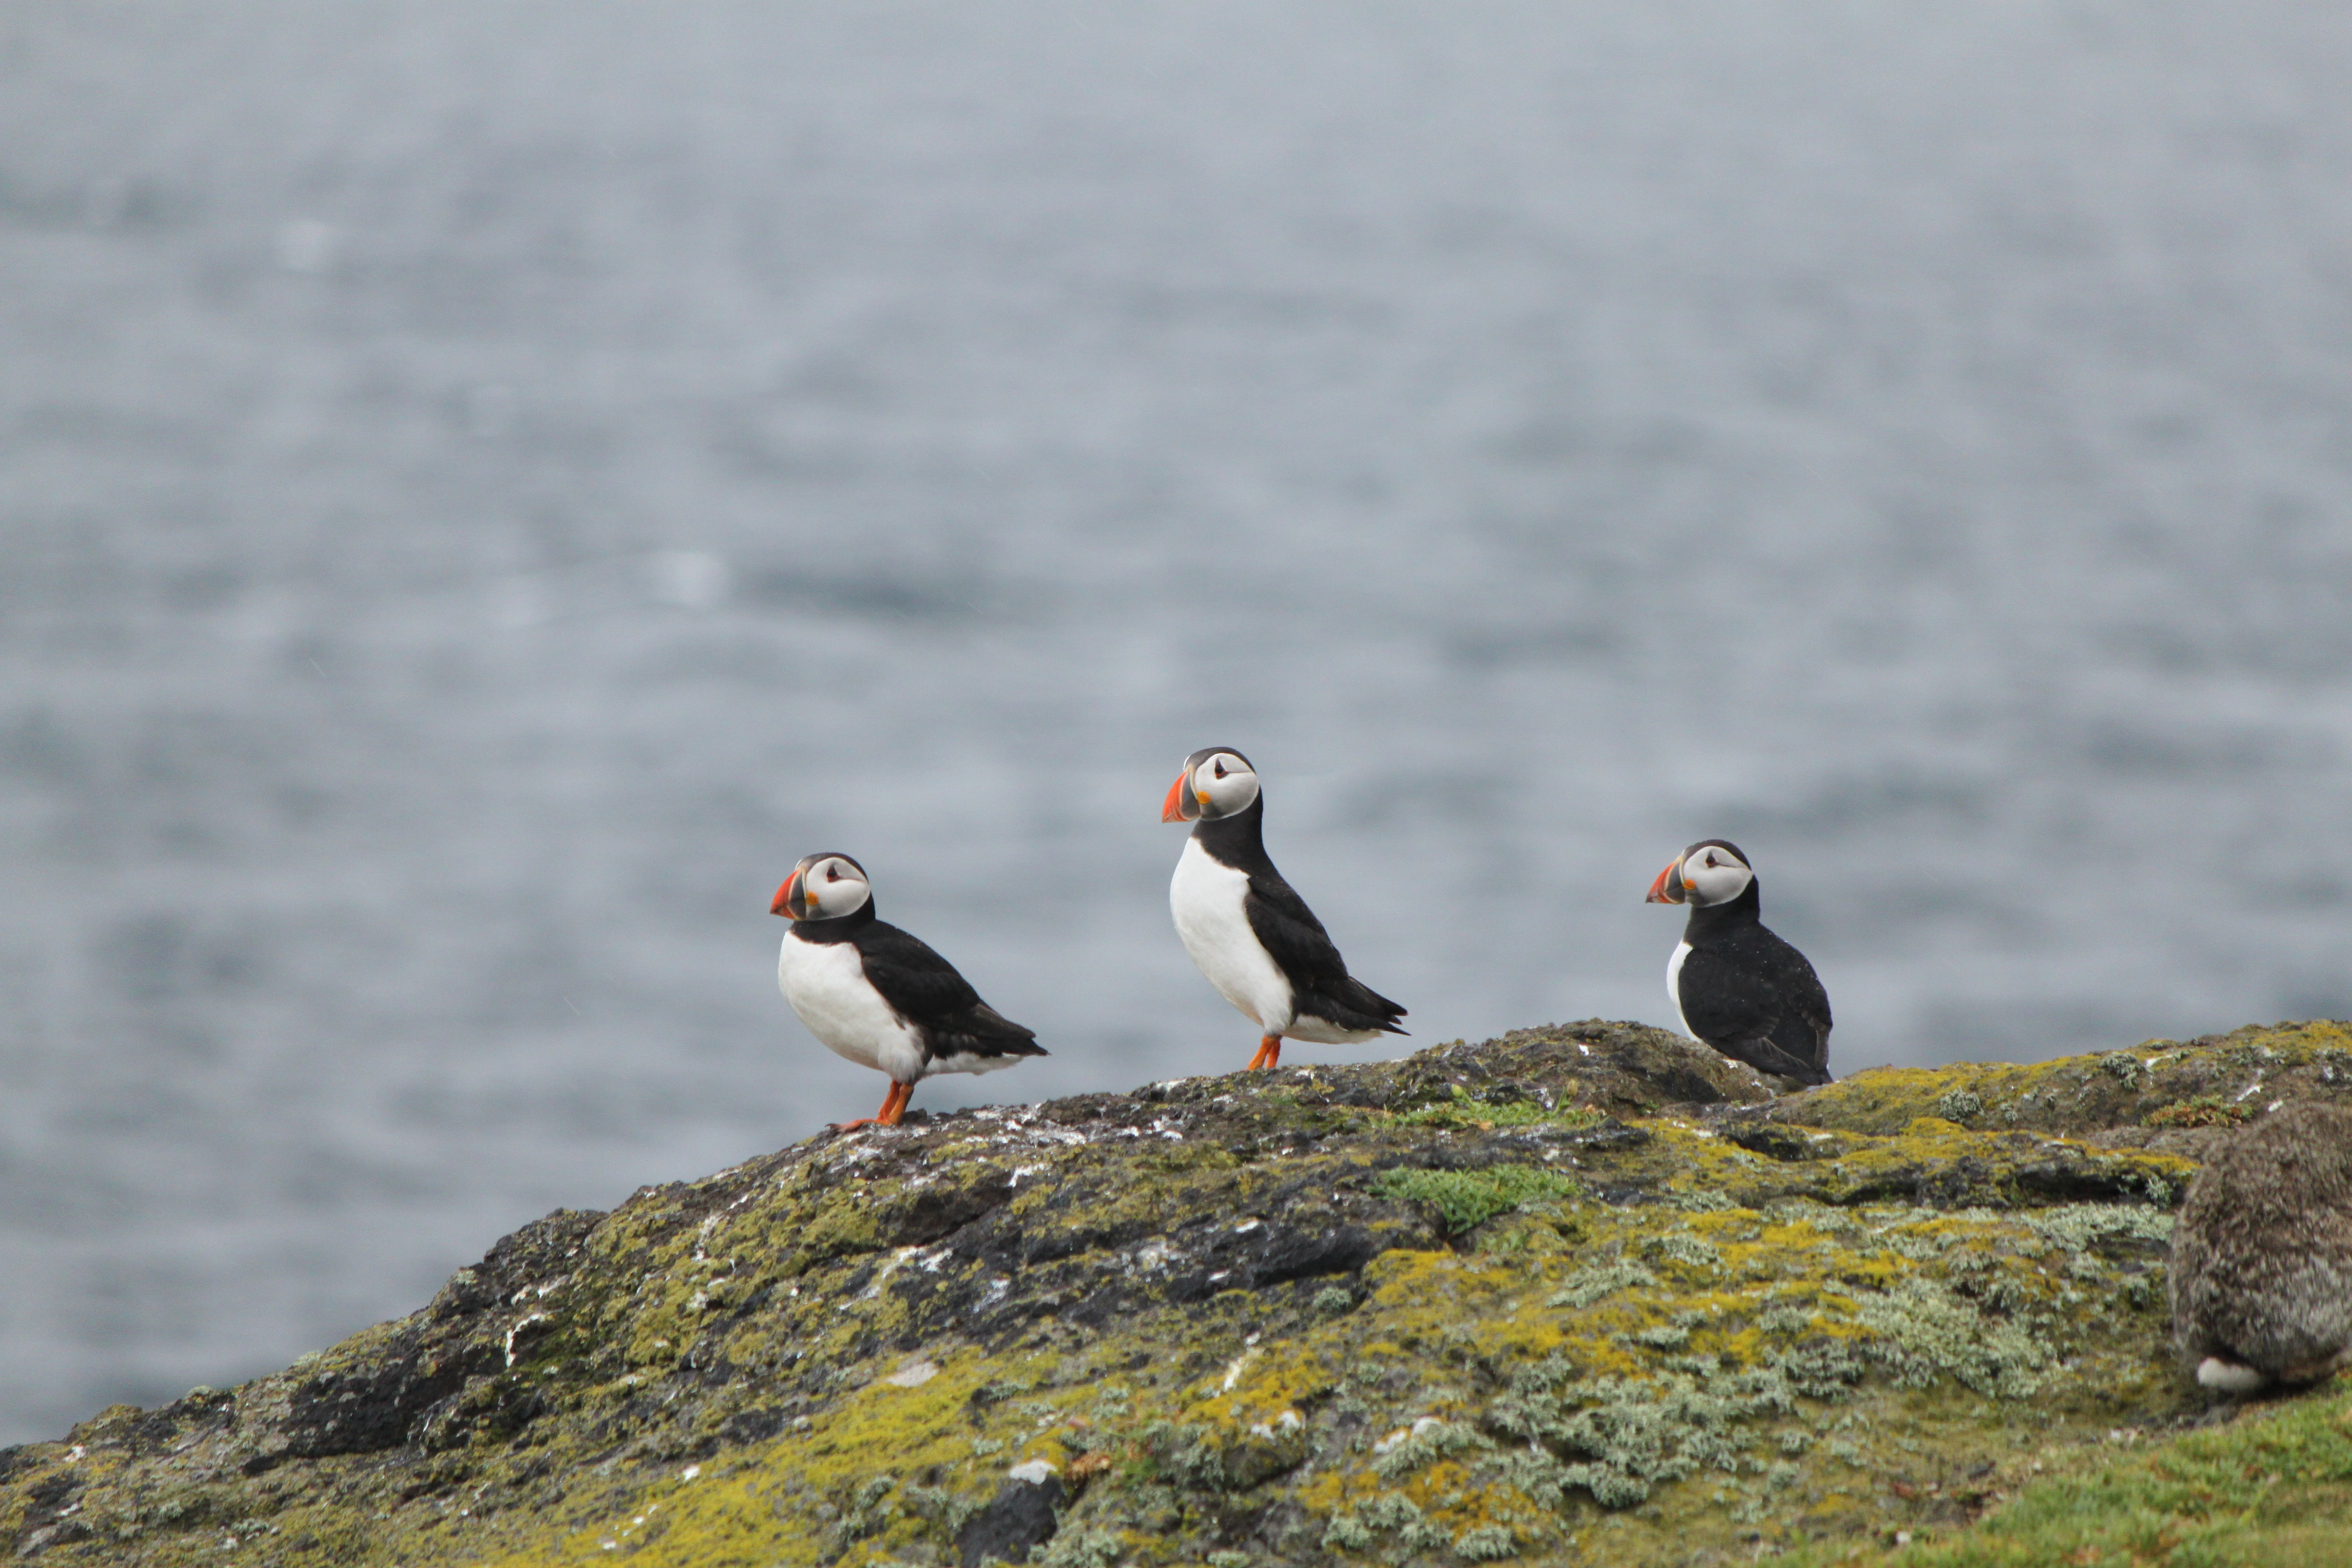 Isle of May puffins from distance